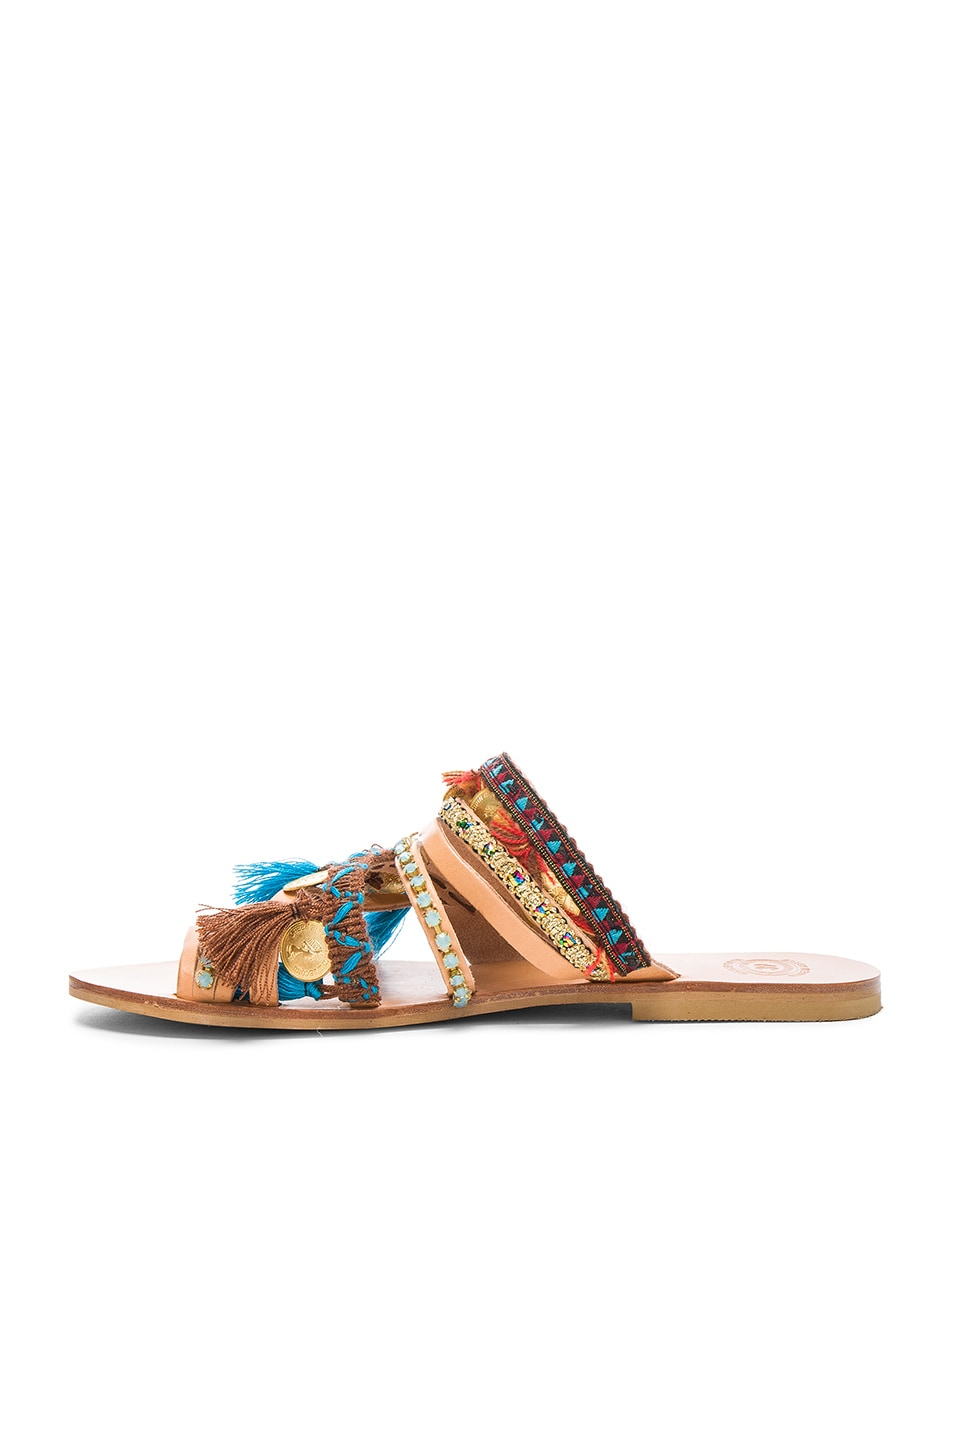 Image 5 of Elina Linardaki Leather Marrakech Sandals in Multi